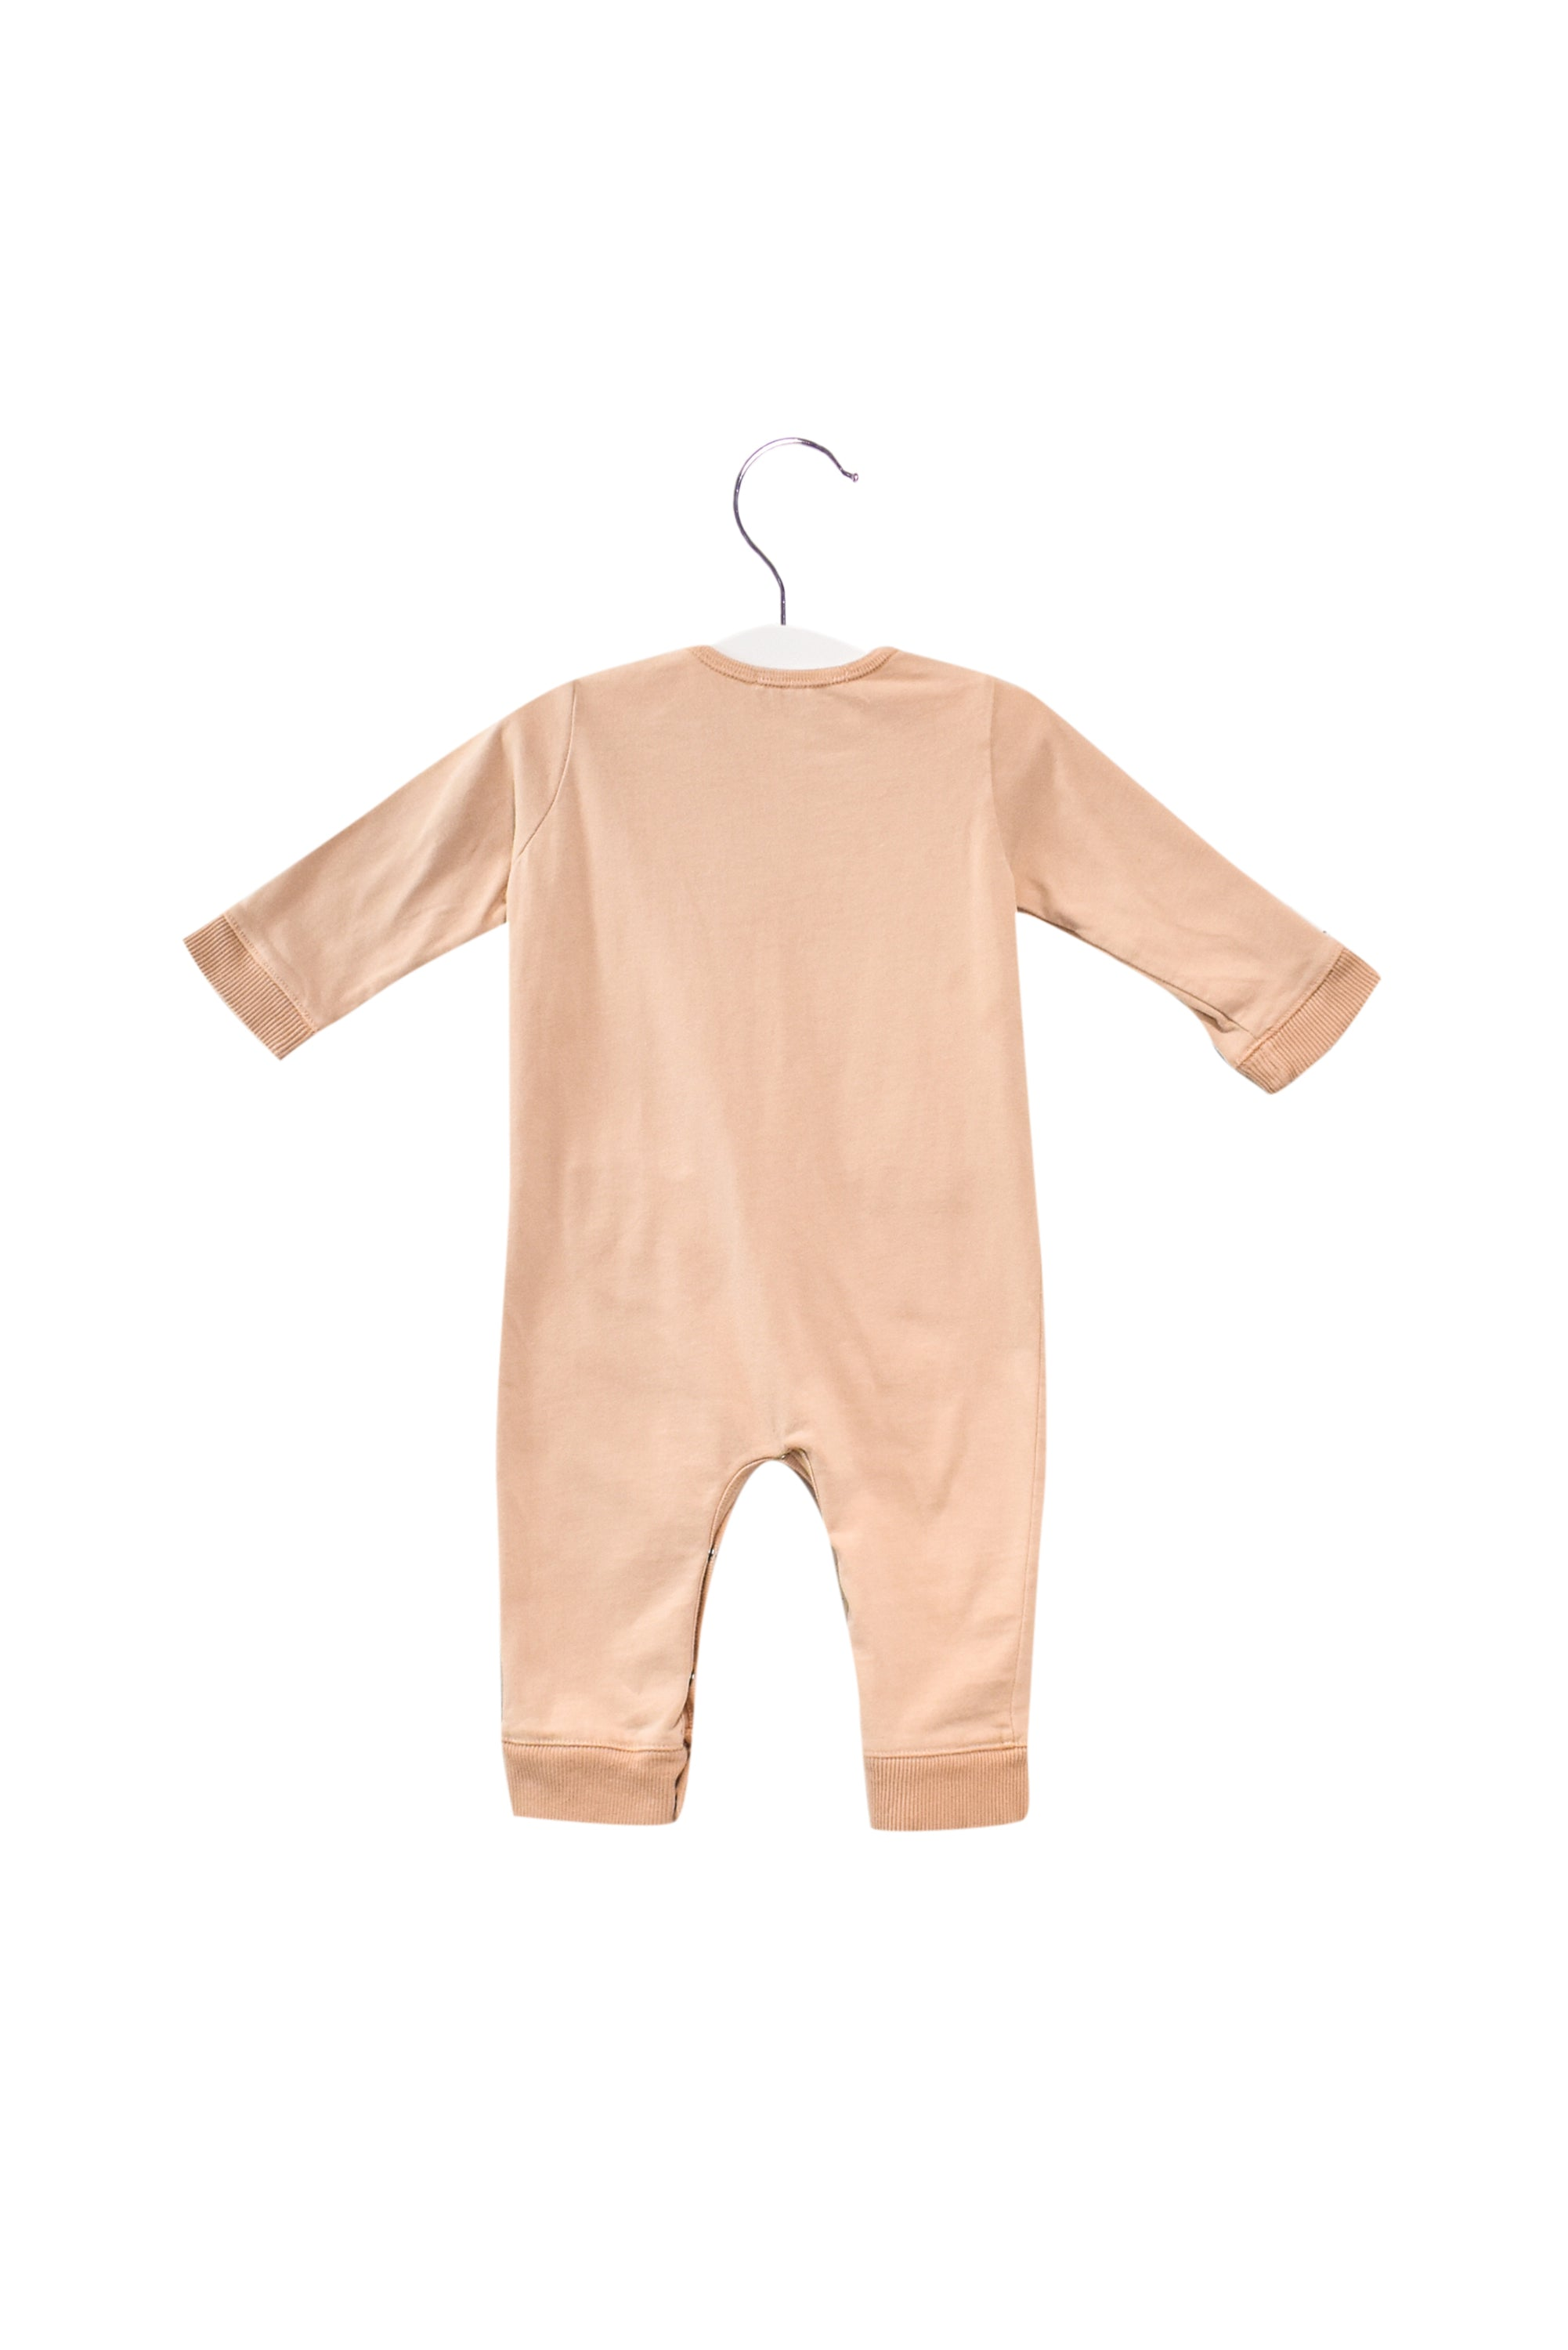 10028047 Marlot Paris Baby~Jumpsuit 12M at Retykle